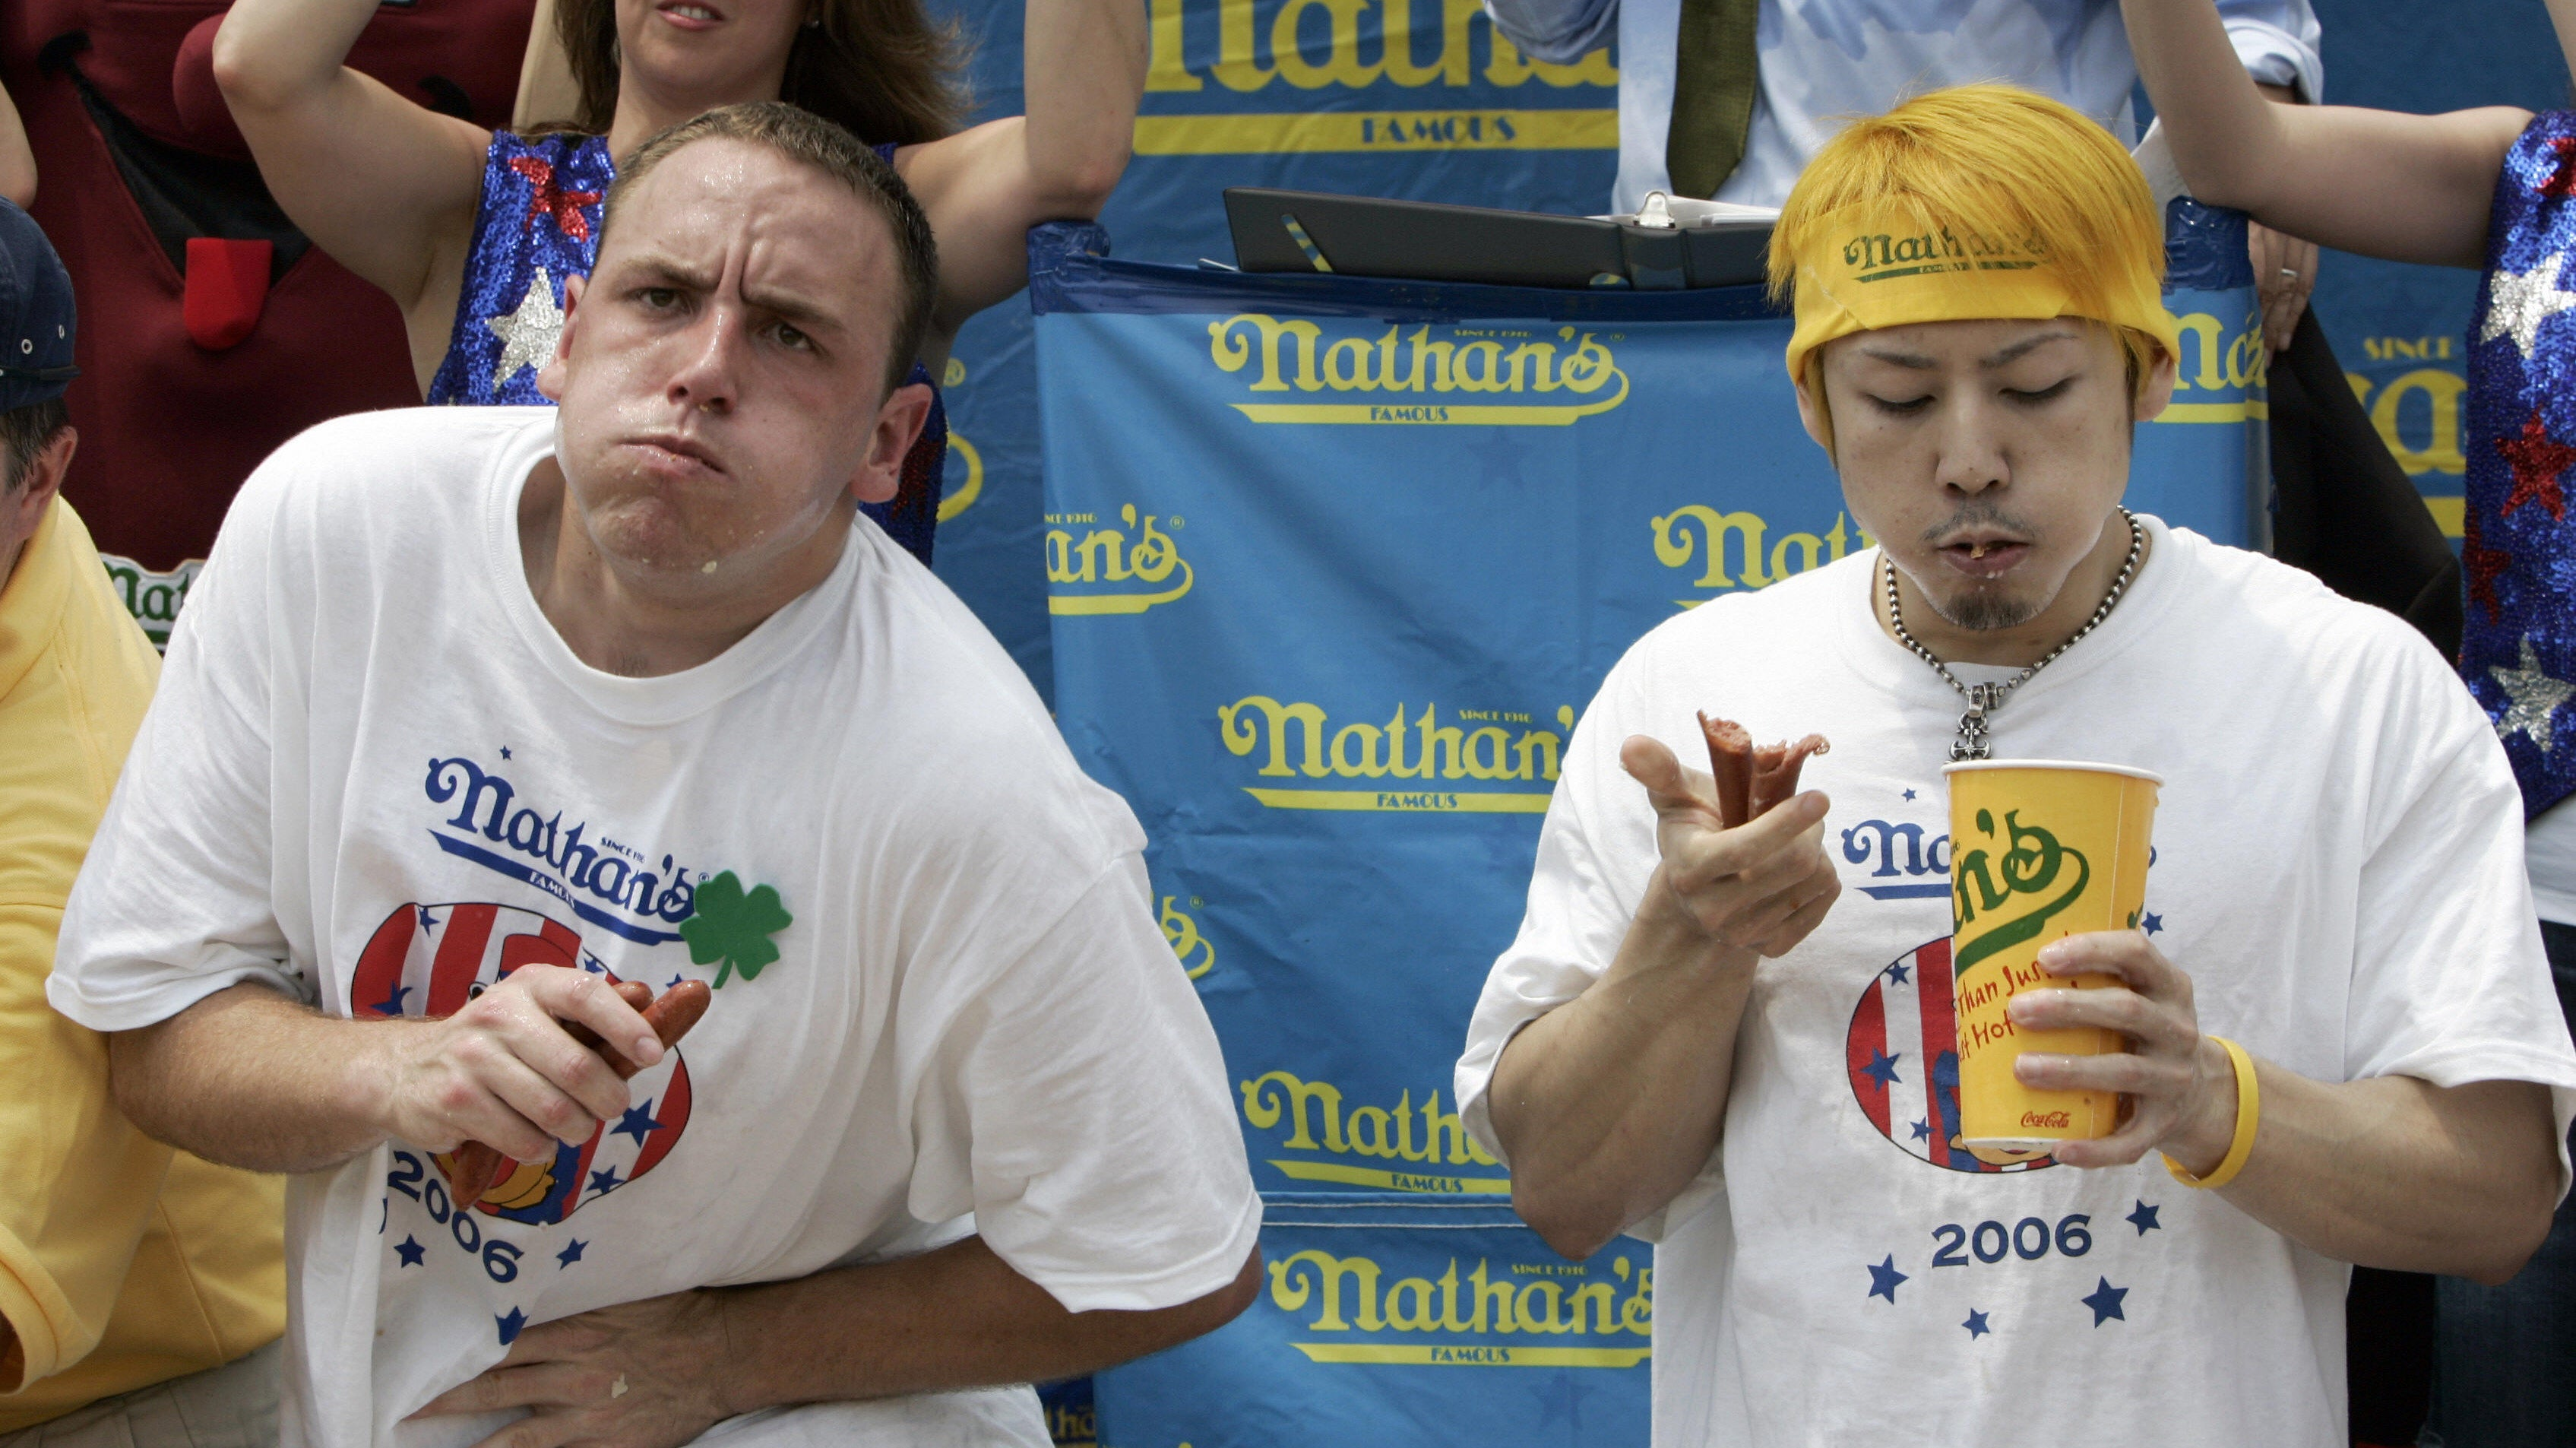 Nathan's Famous Hot Dog Eating Contest Through the Years